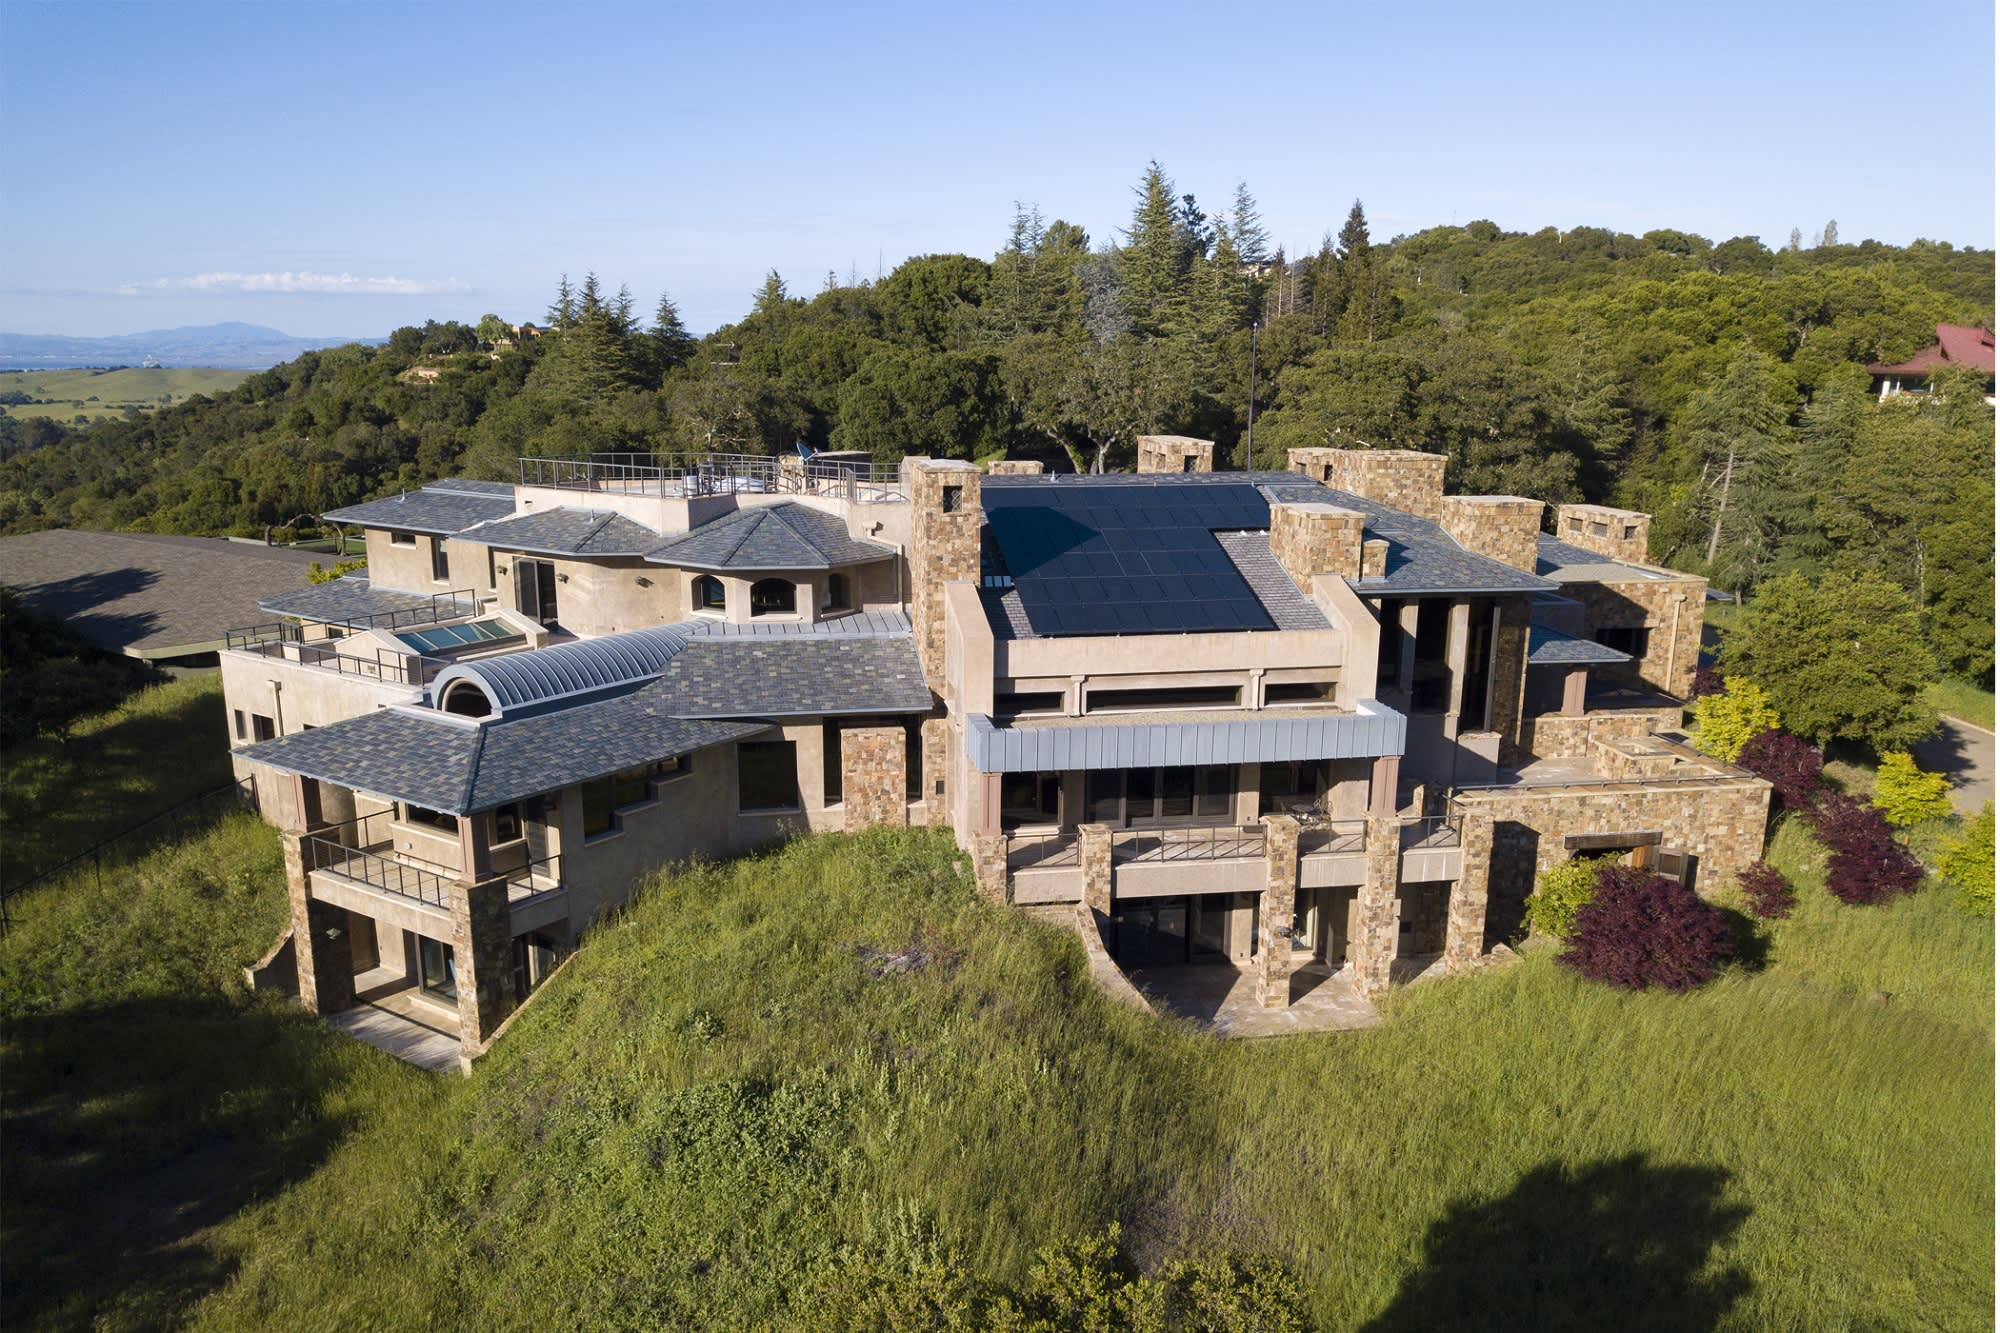 Tech billionaire slashed price of his Silicon Valley mansion from $96.8 million to $54.8 million—take a look inside